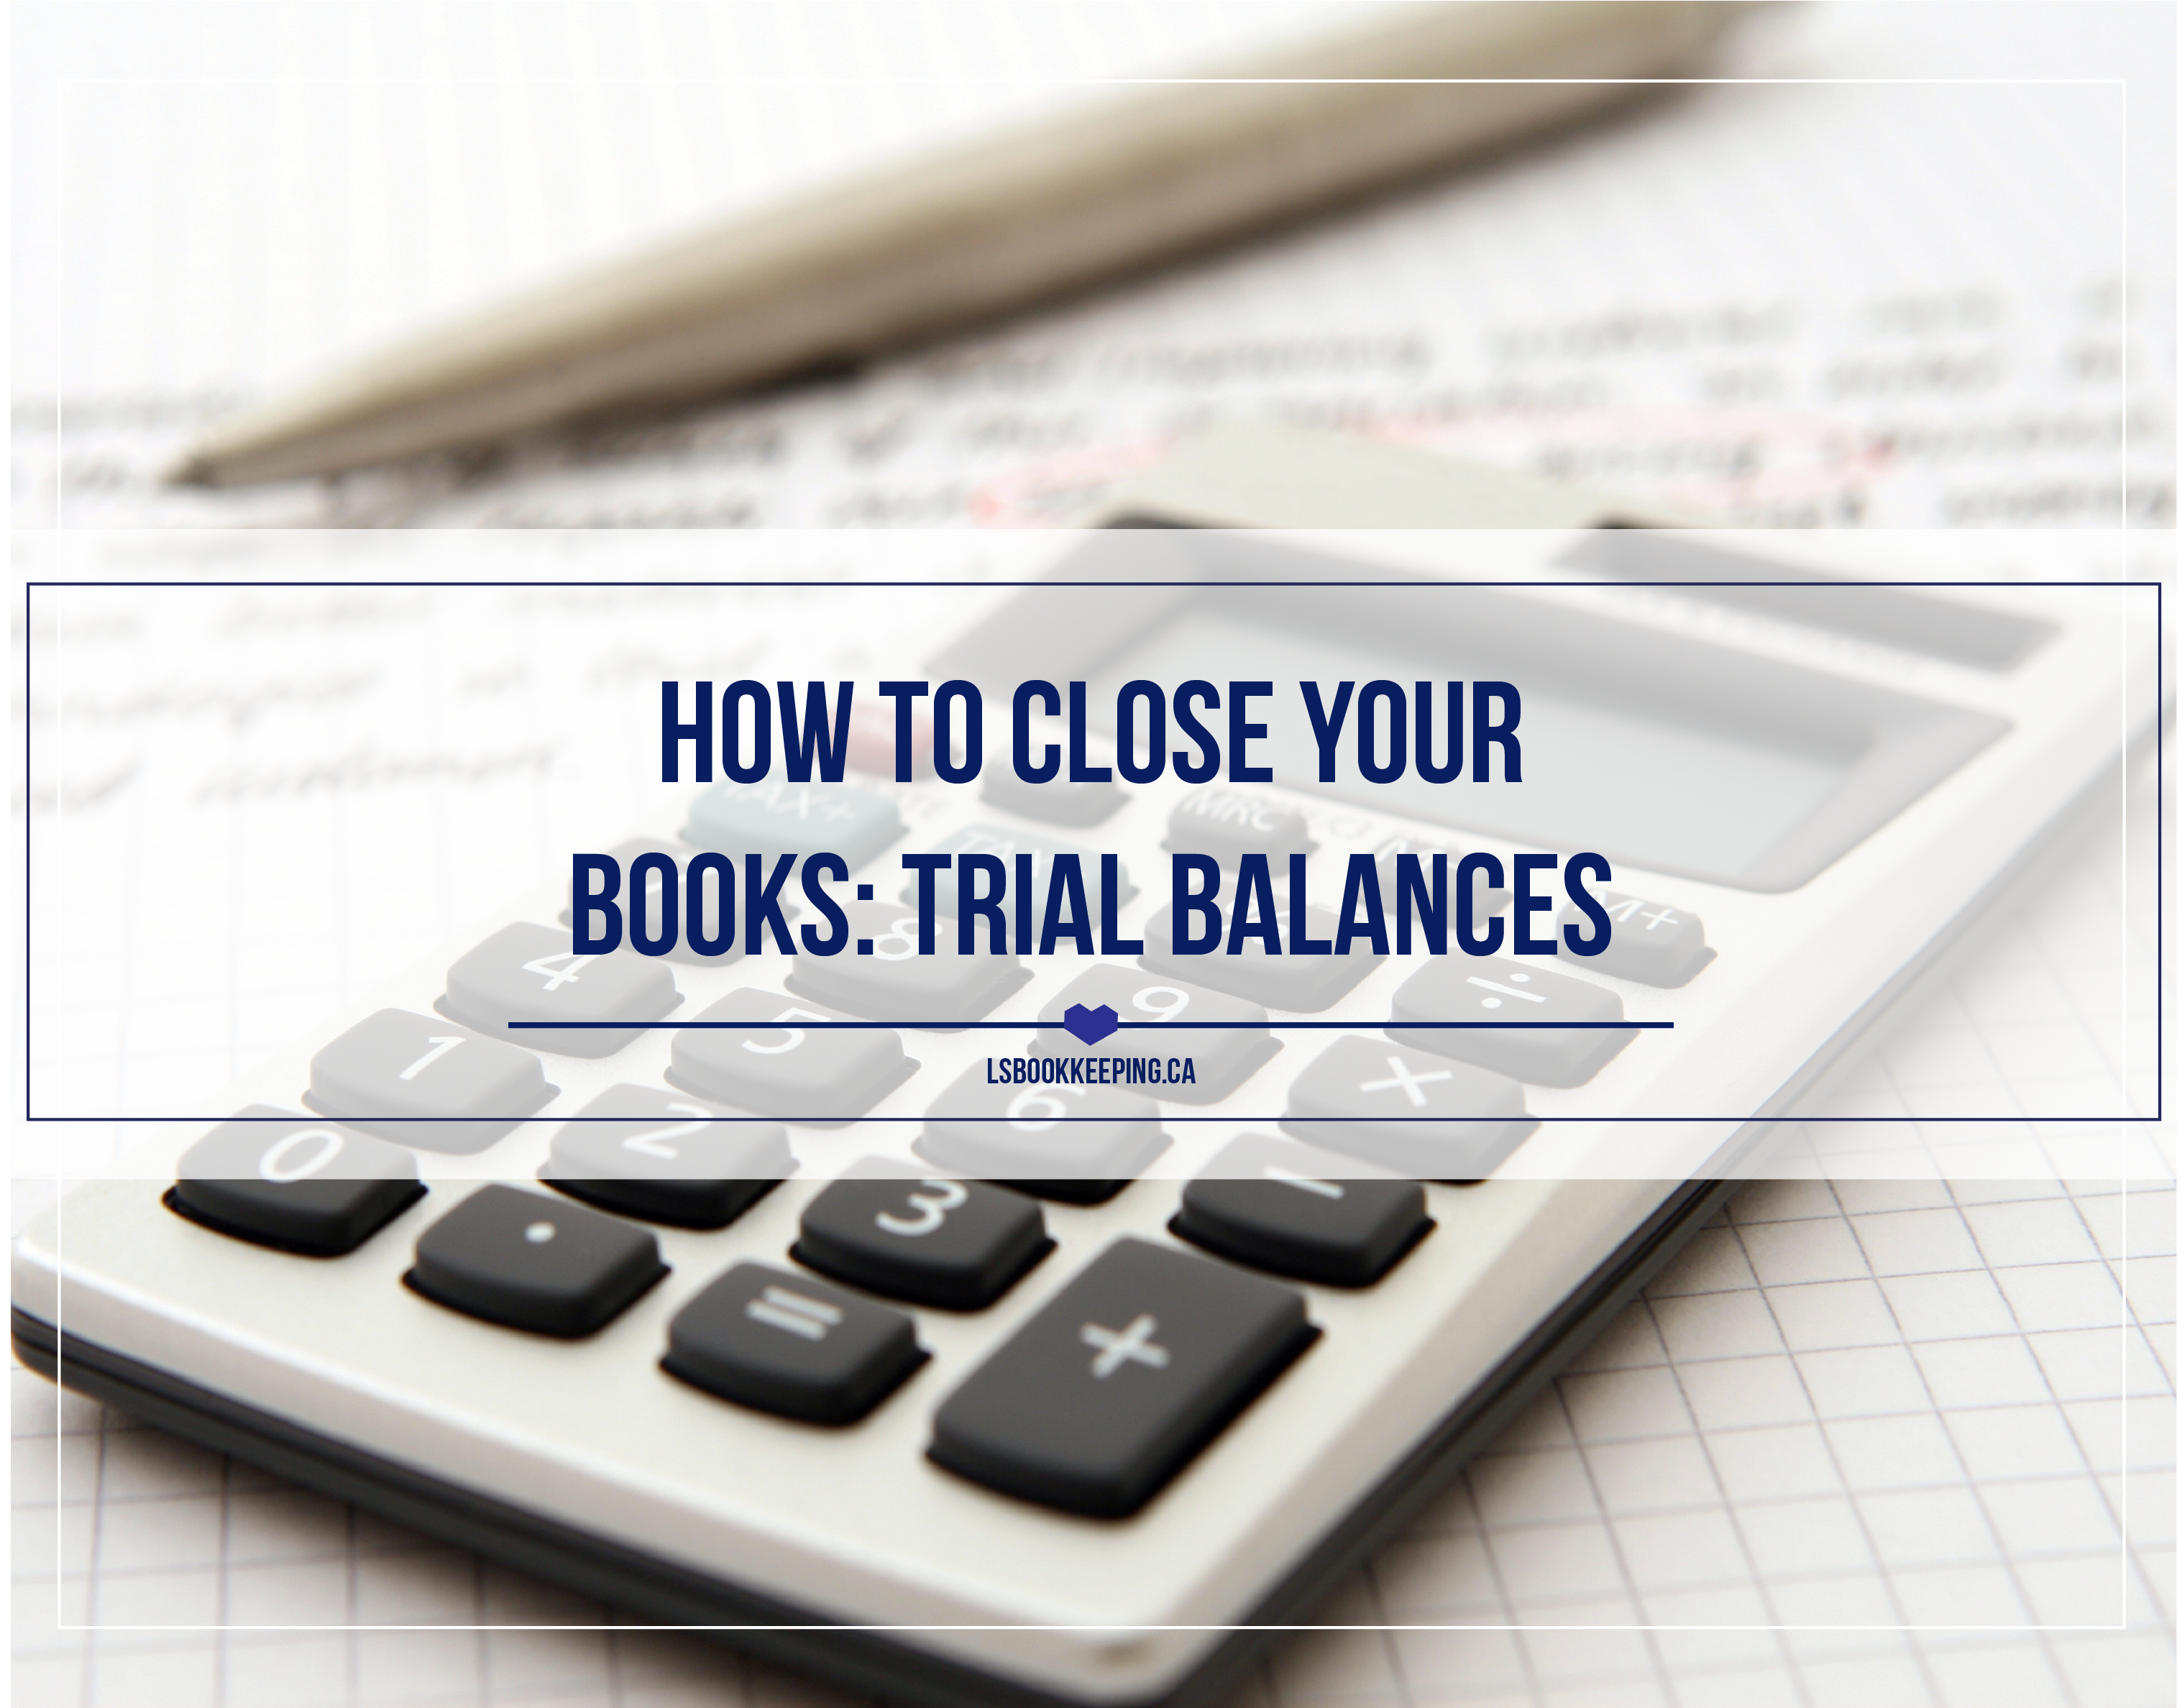 How to Close Your Books: Trial Balances